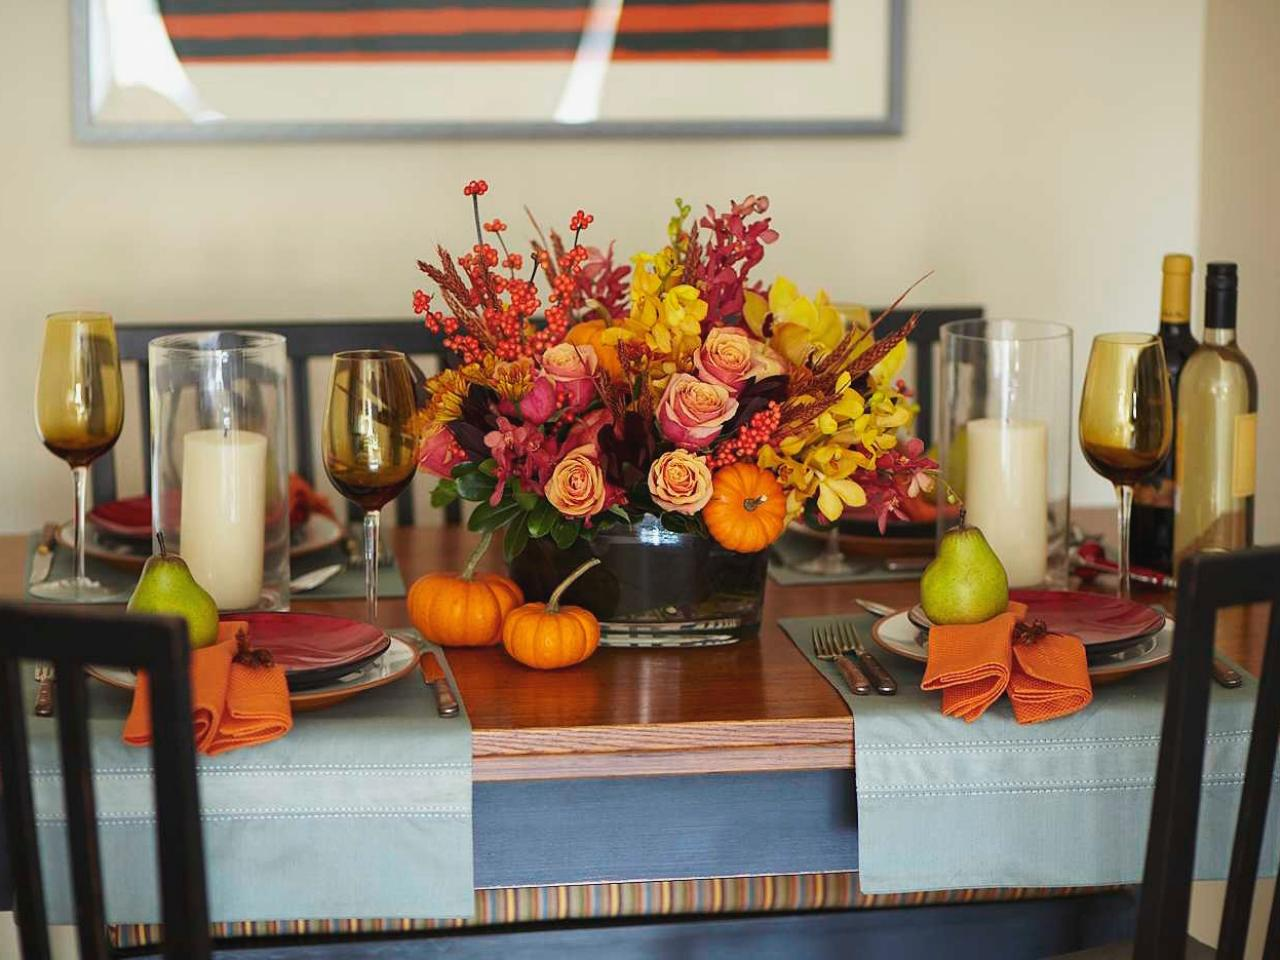 Thanksgiving Home Decorations Ideas Part - 25: Unique Ideas To Up Your Hosting Game This Thanksgiving - ZING Blog By  Quicken Loans | ZING Blog By Quicken Loans